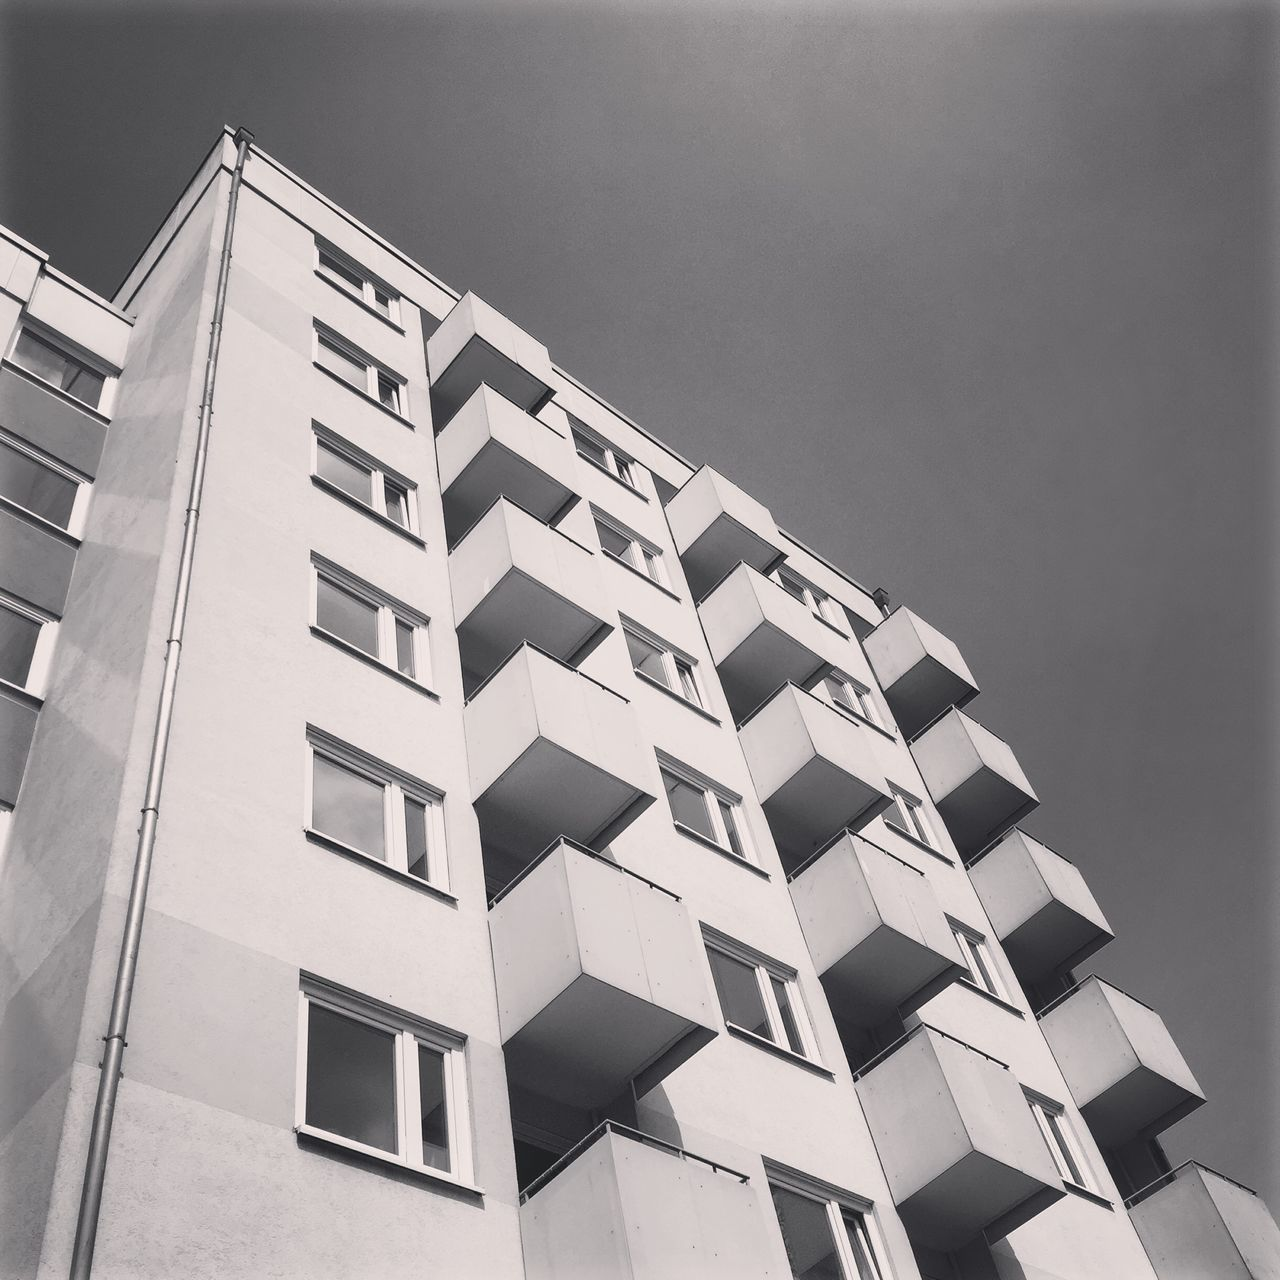 Abstract Architecture Architecture_collection Balcony Berlin Photography Berliner Ansichten Berlinstagram Black & White Blackandwhite Bnw Building Exterior Built Structure Clear Sky Day Kreuzberg Low Angle View Minimal No People Outdoors Pattern Plattenbau Sky Skyview Structure Window